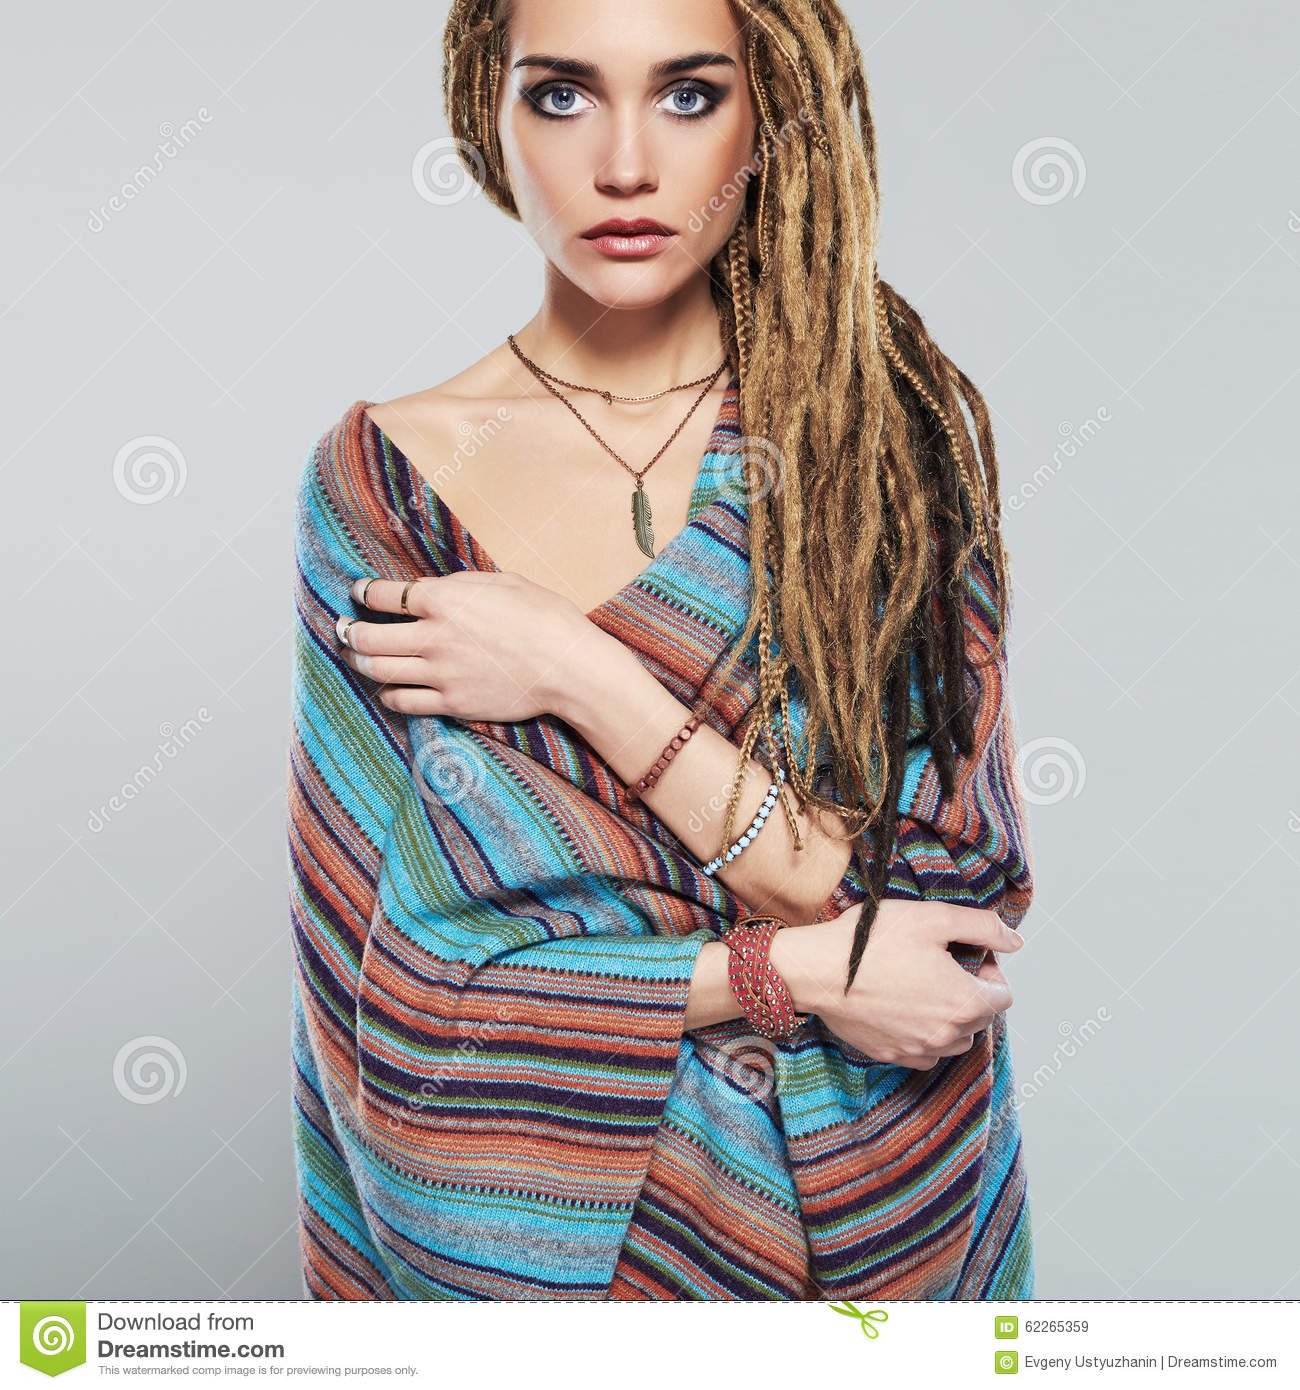 beautiful girl with dreadlocks pretty young woman with braids african hairstyle hippie stock. Black Bedroom Furniture Sets. Home Design Ideas